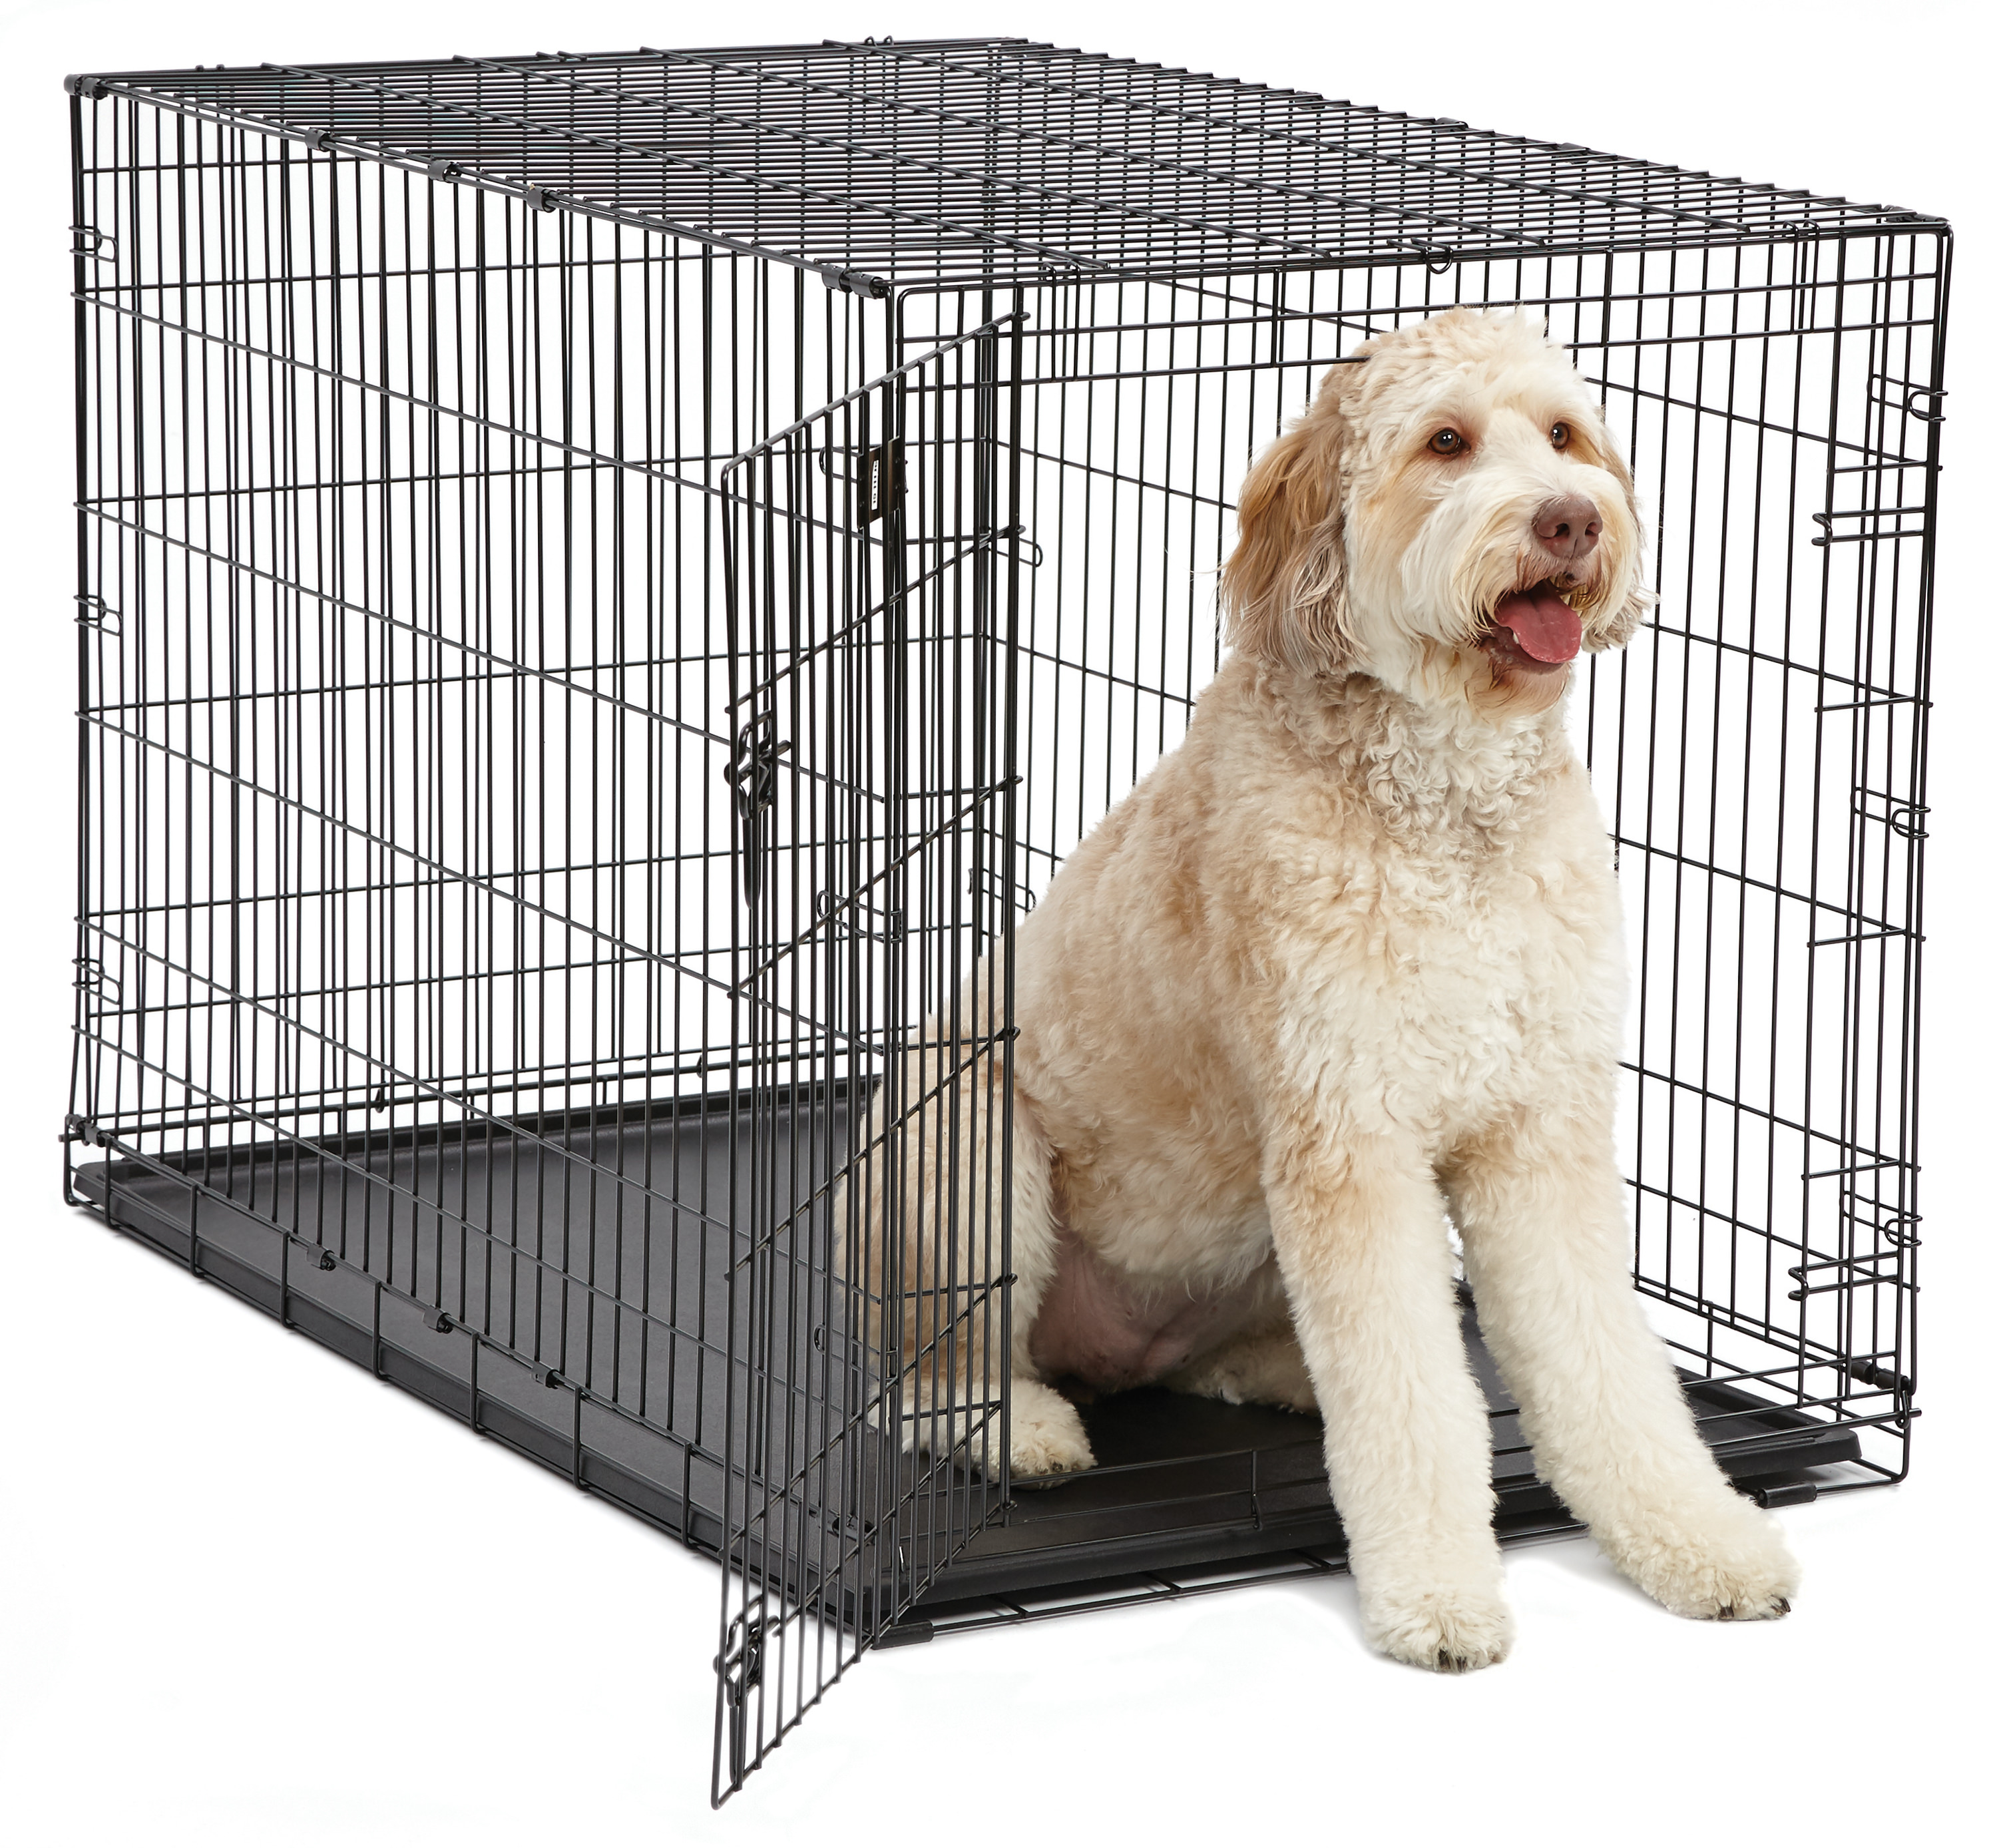 "MidWest 48 "" Single Door iCrate Metal Dog Crate, Black by Midwest Homes For Pets"